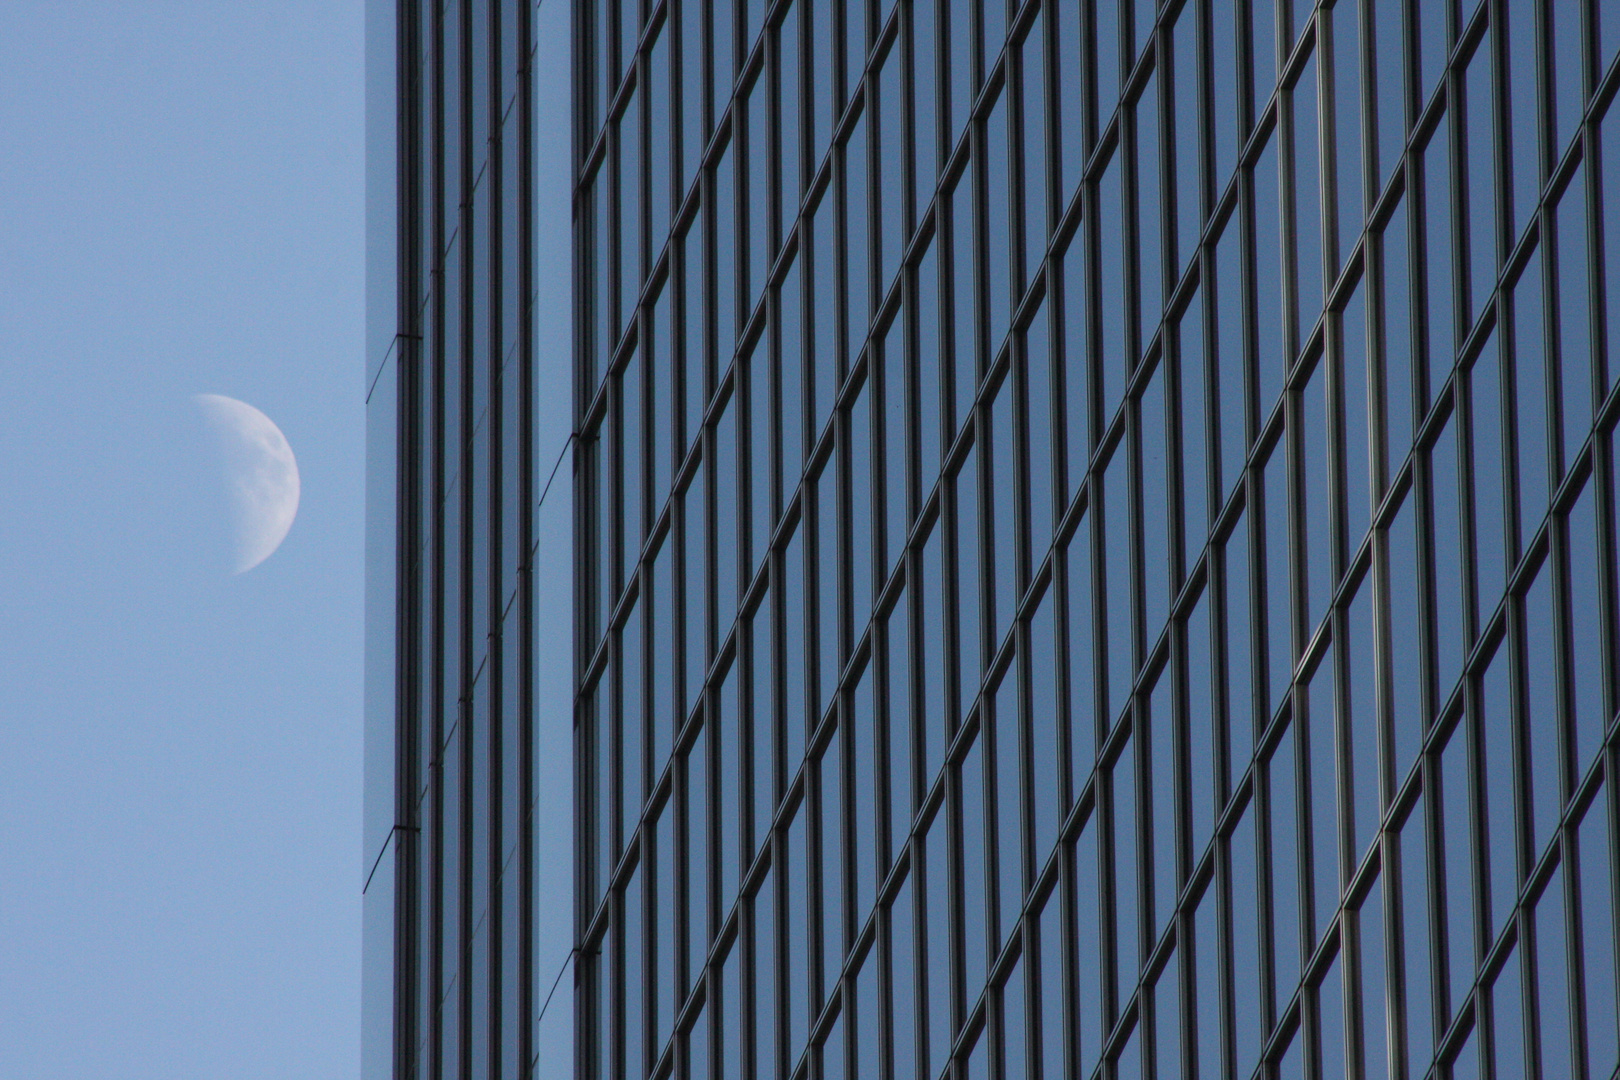 """THE MOON LIVES ON 50TH FLOOR"""